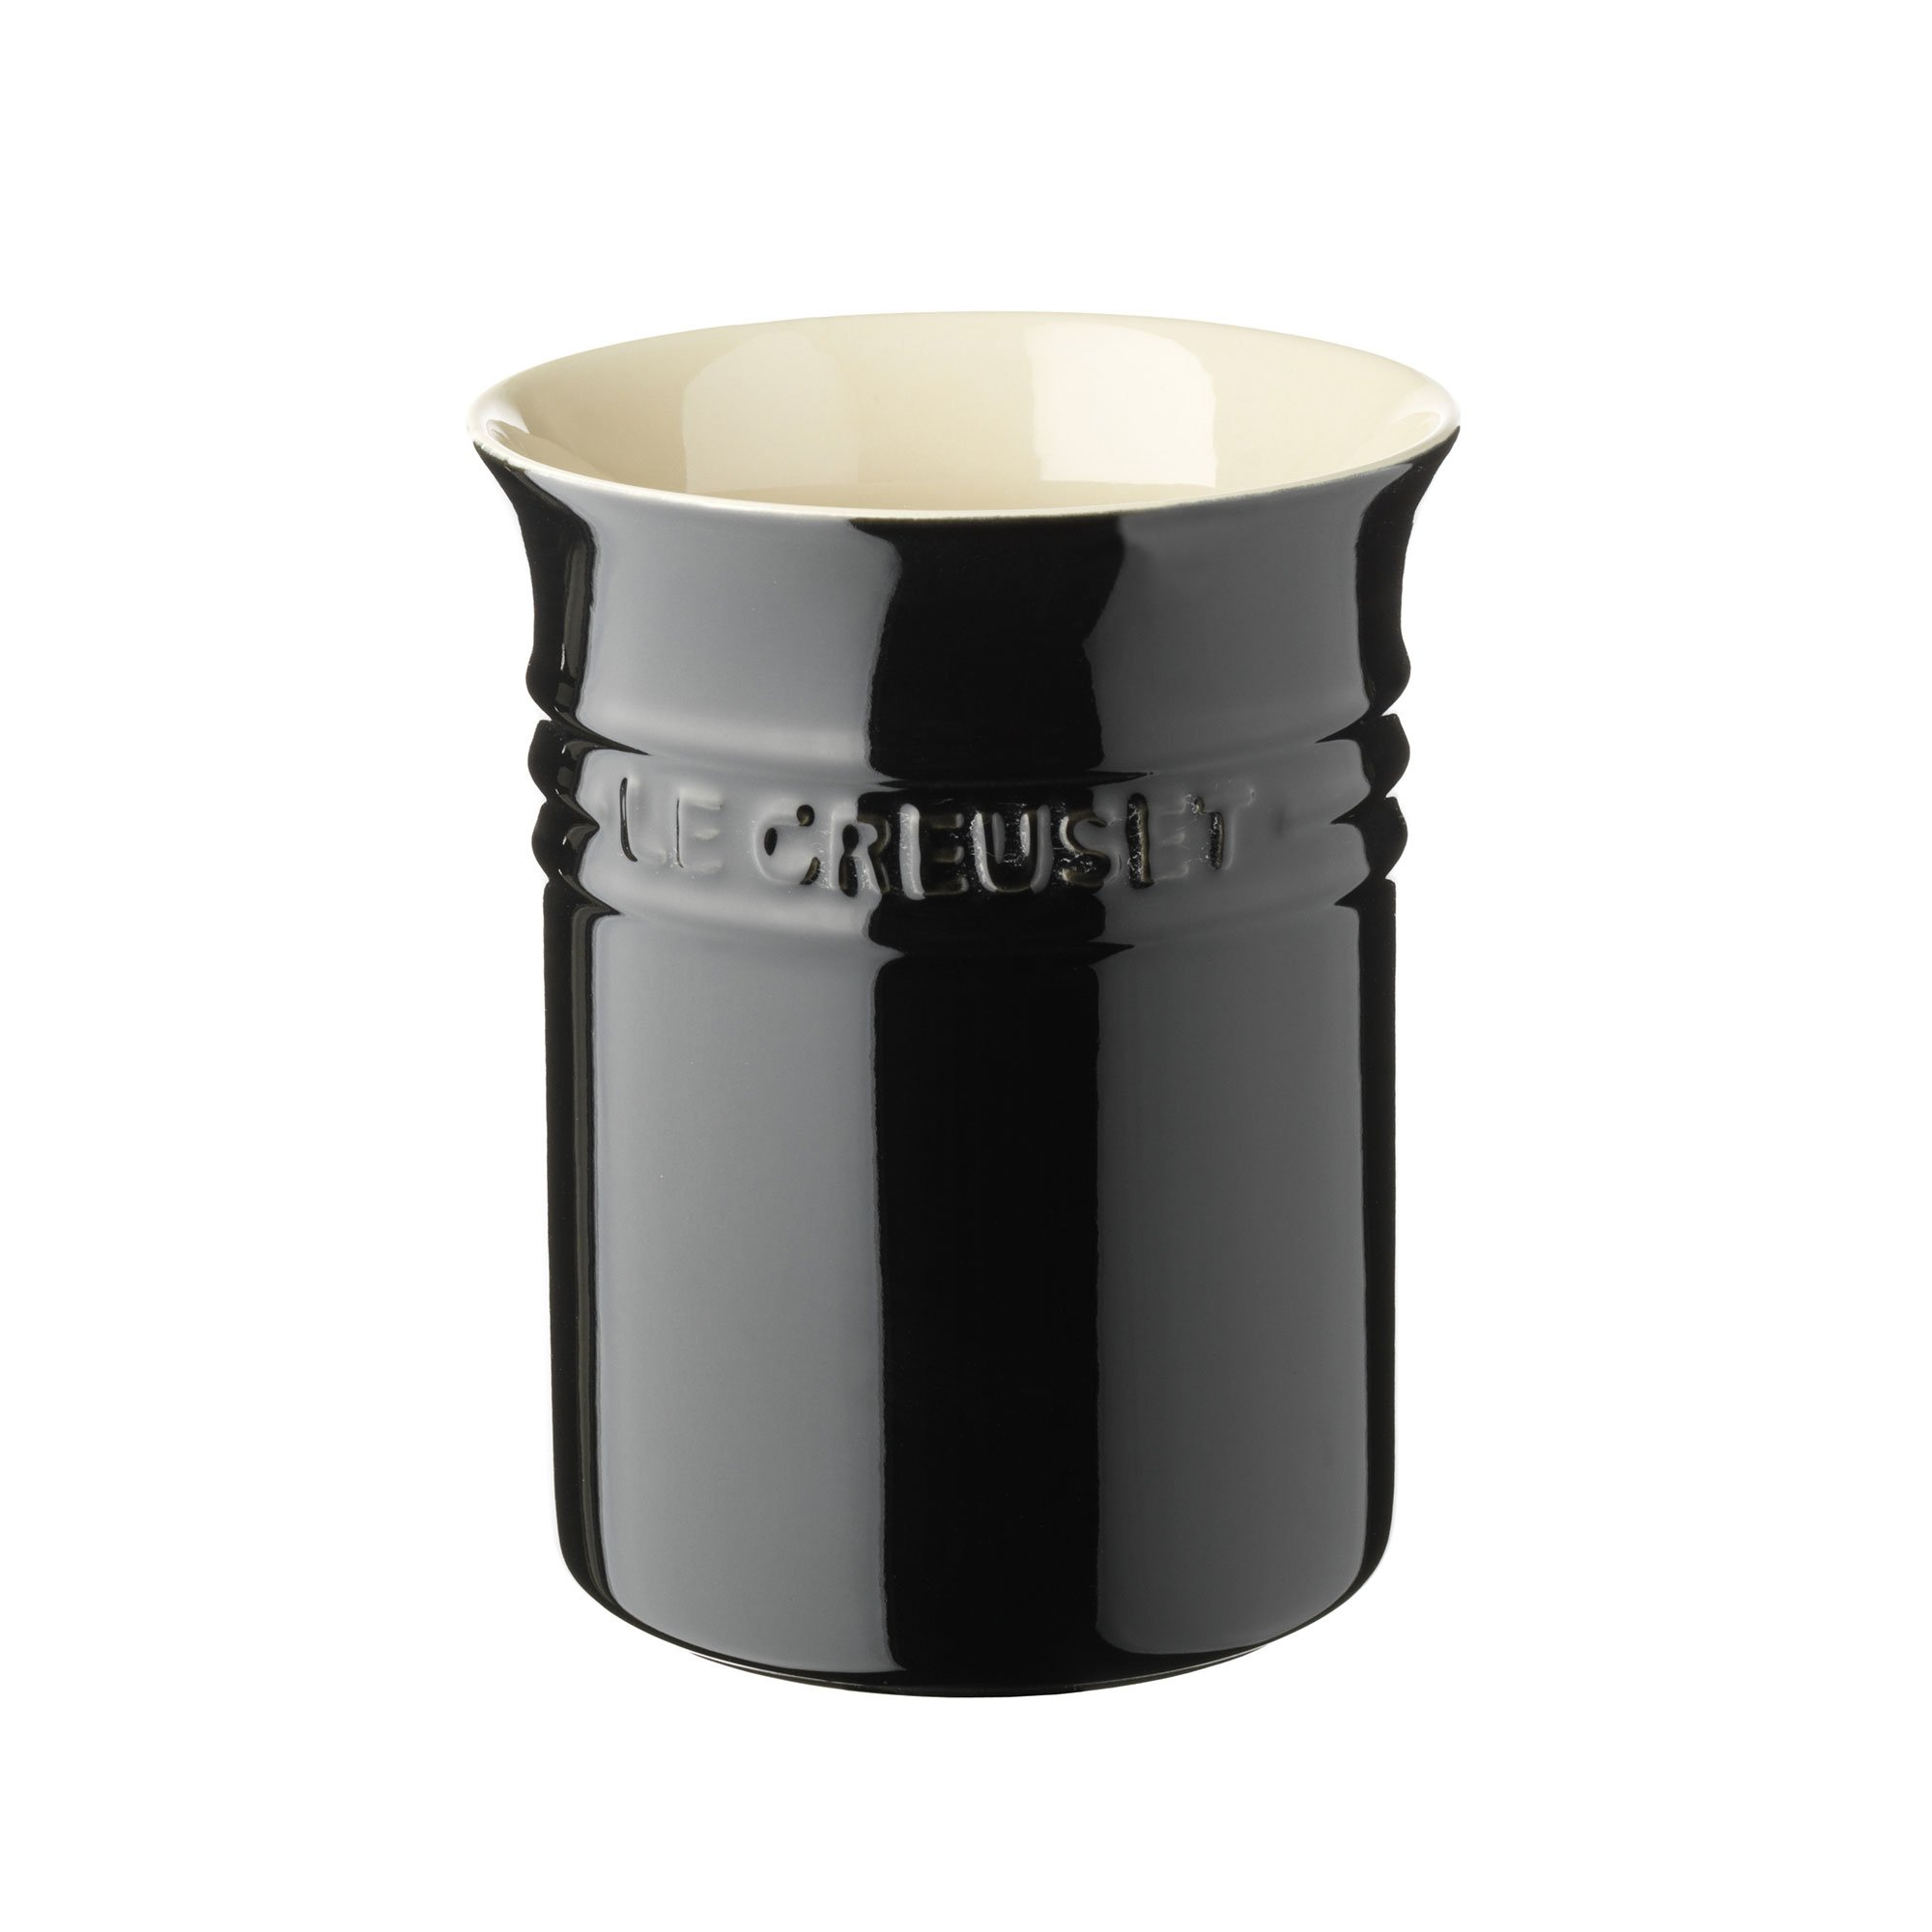 Le Creuset Stoneware 1-Quart Crock, Black by Unknown (Image #1)